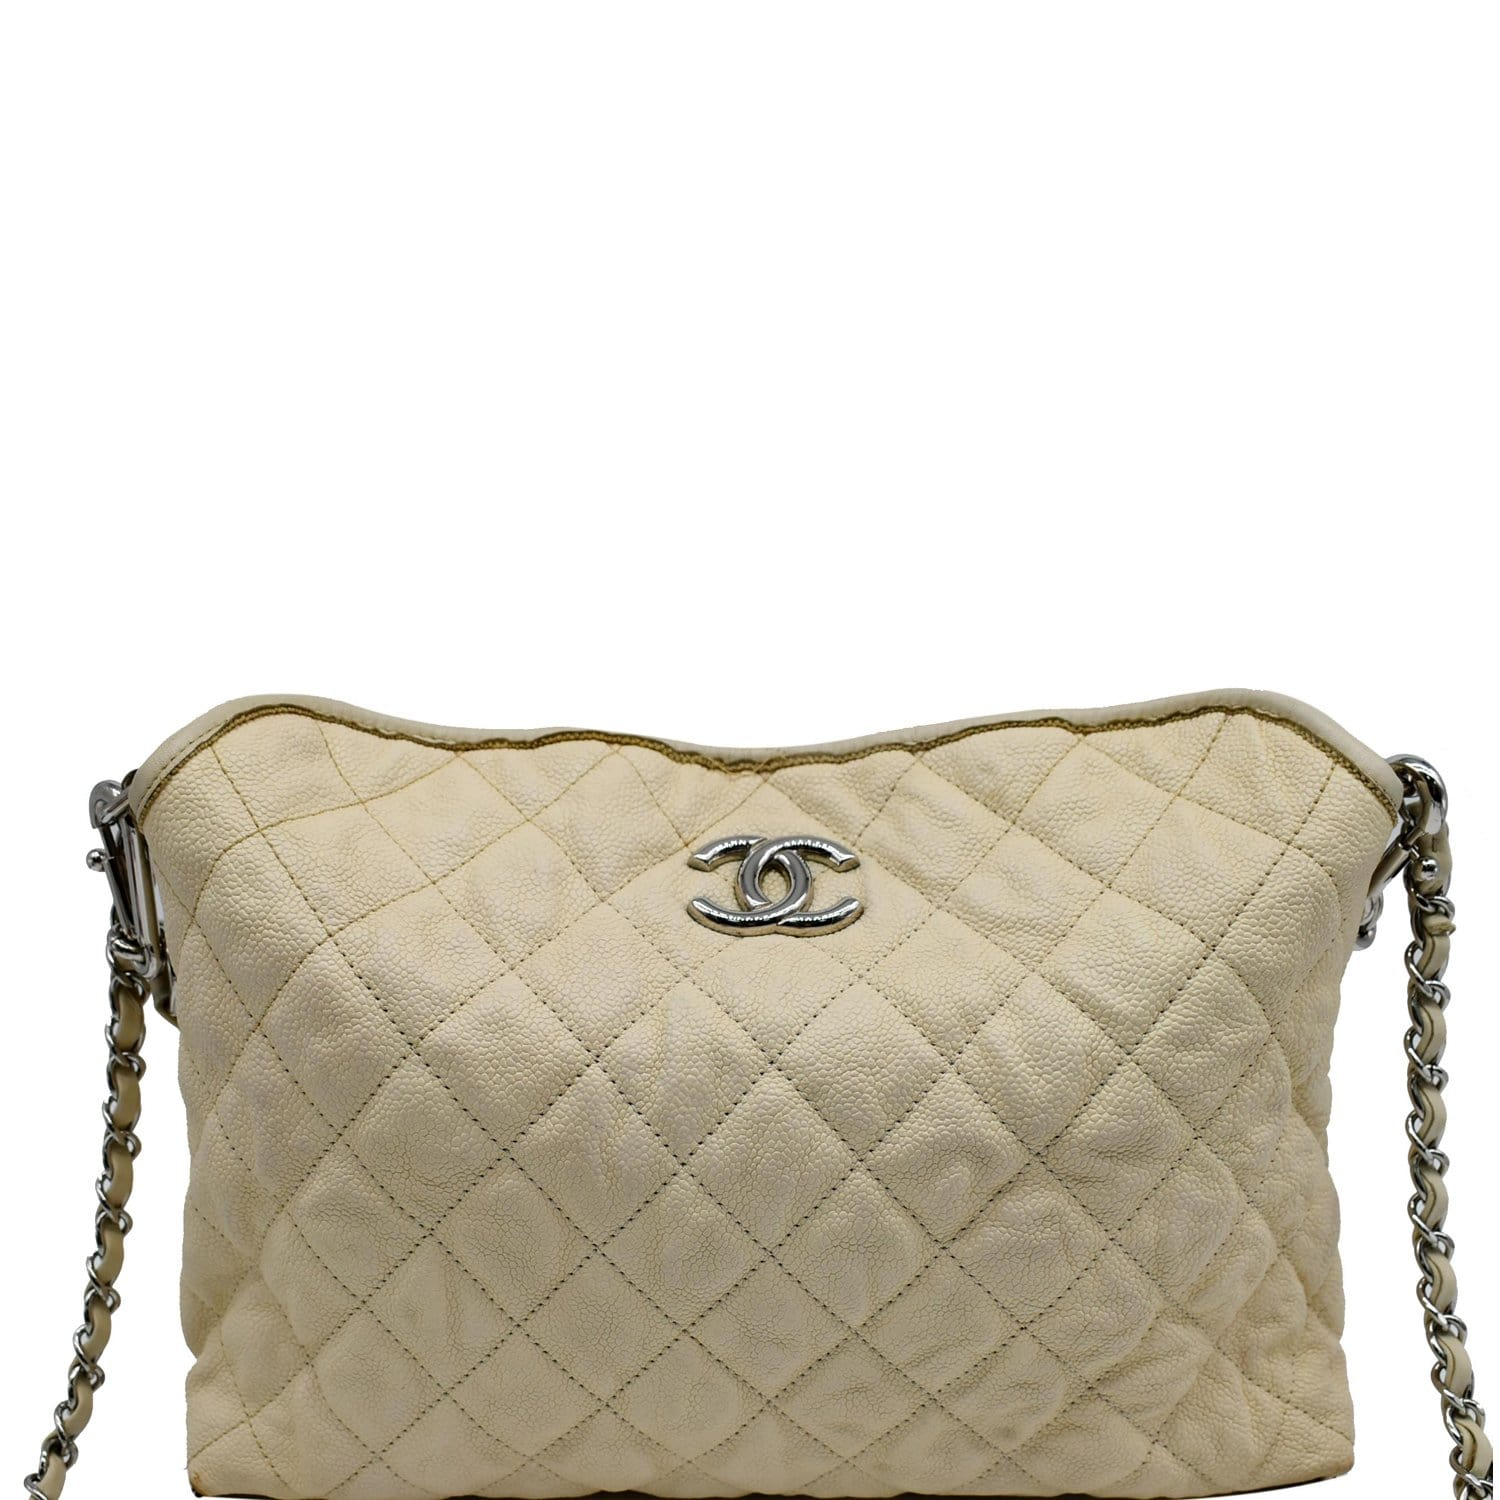 CHANEL French Riviera Quilted Caviar Leather Hobo Bag White